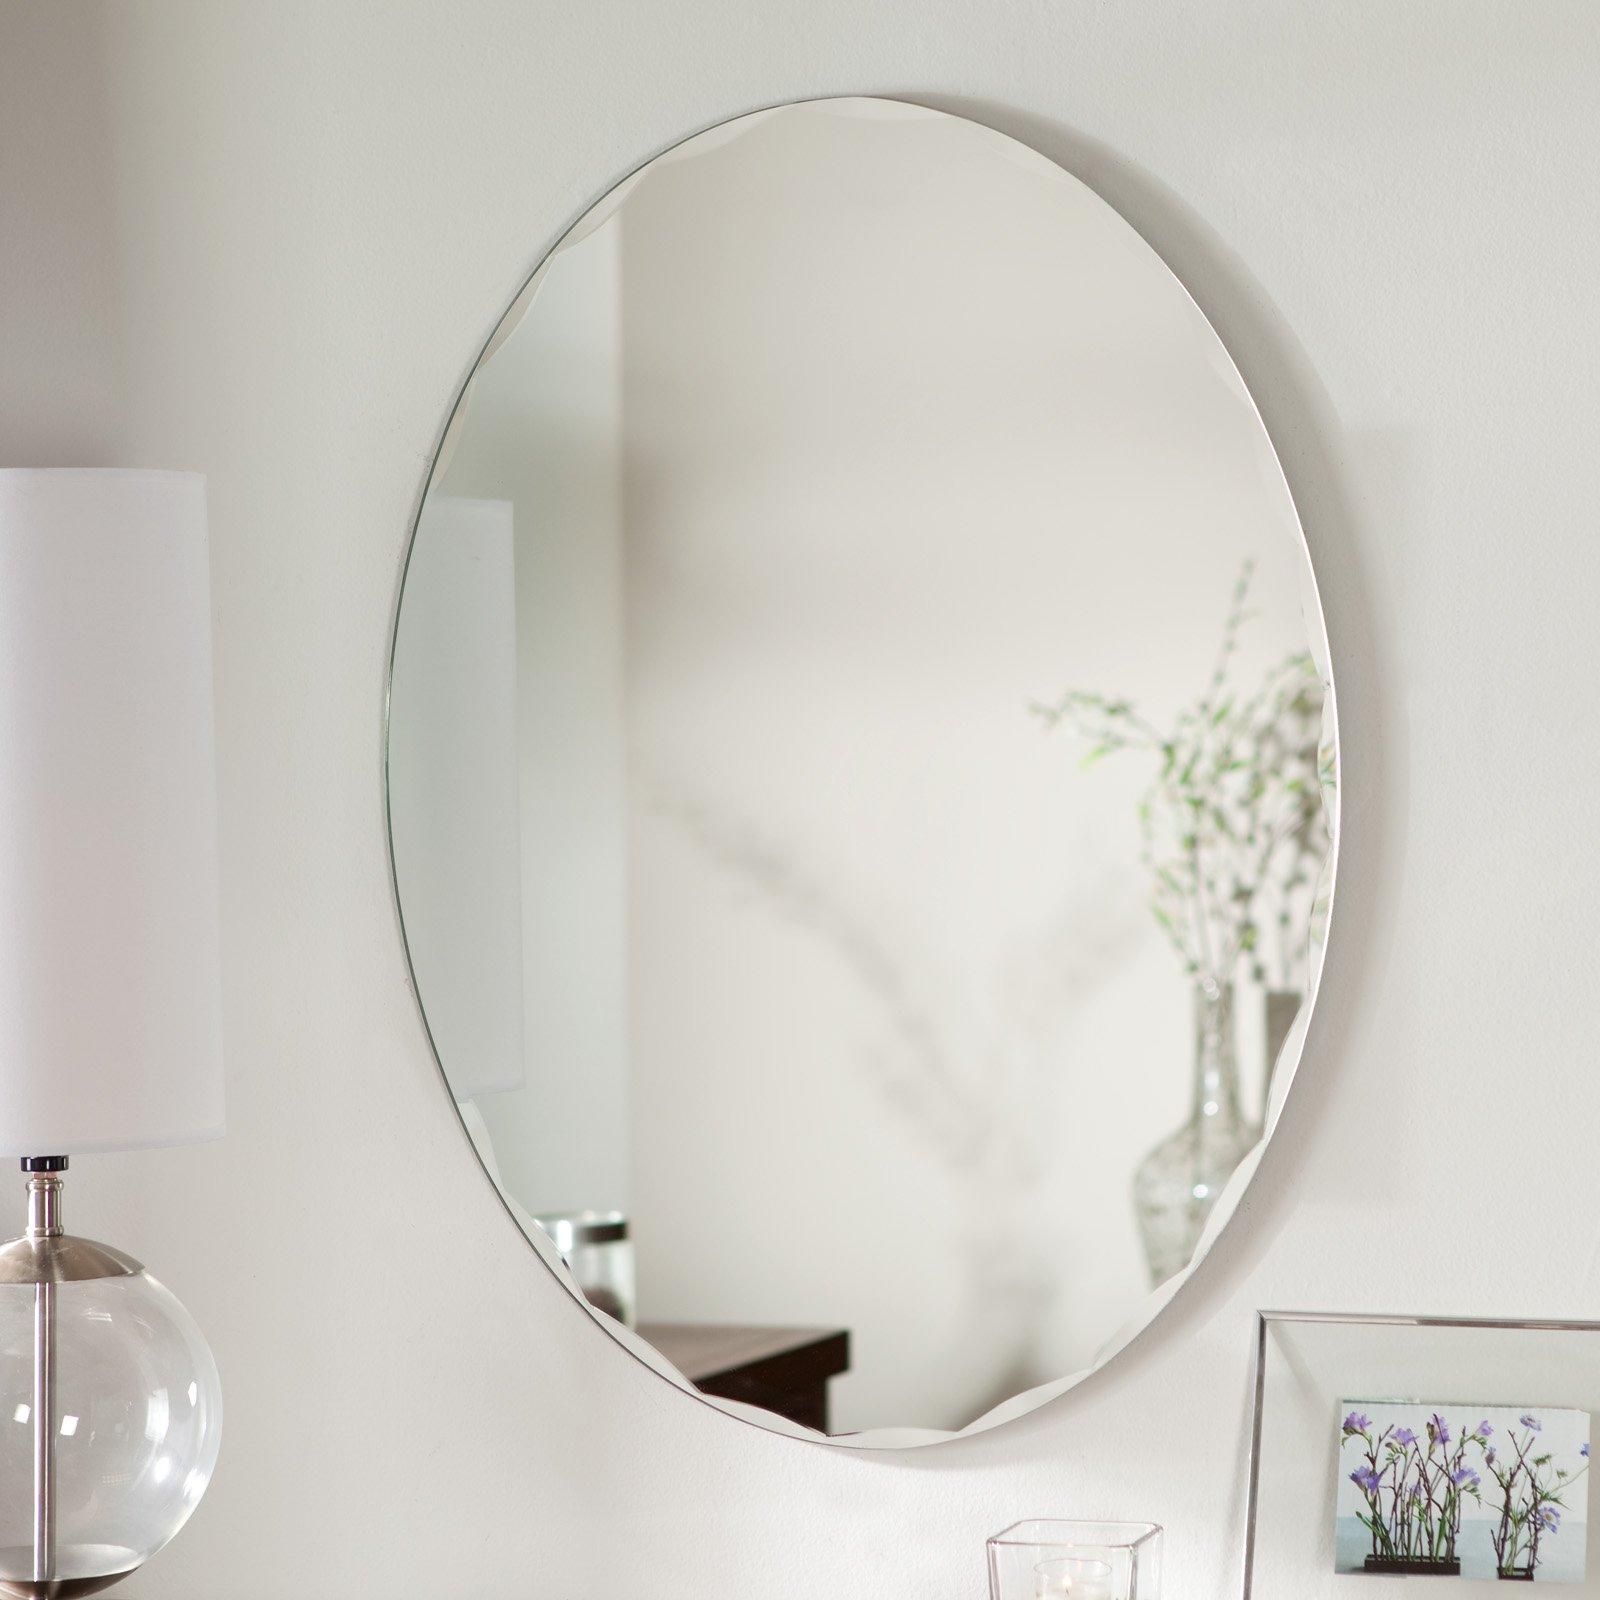 Décor Wonderland Frameless Avenue Wall Mirror 23.5W x 31.5H in. by Decor Wonderland